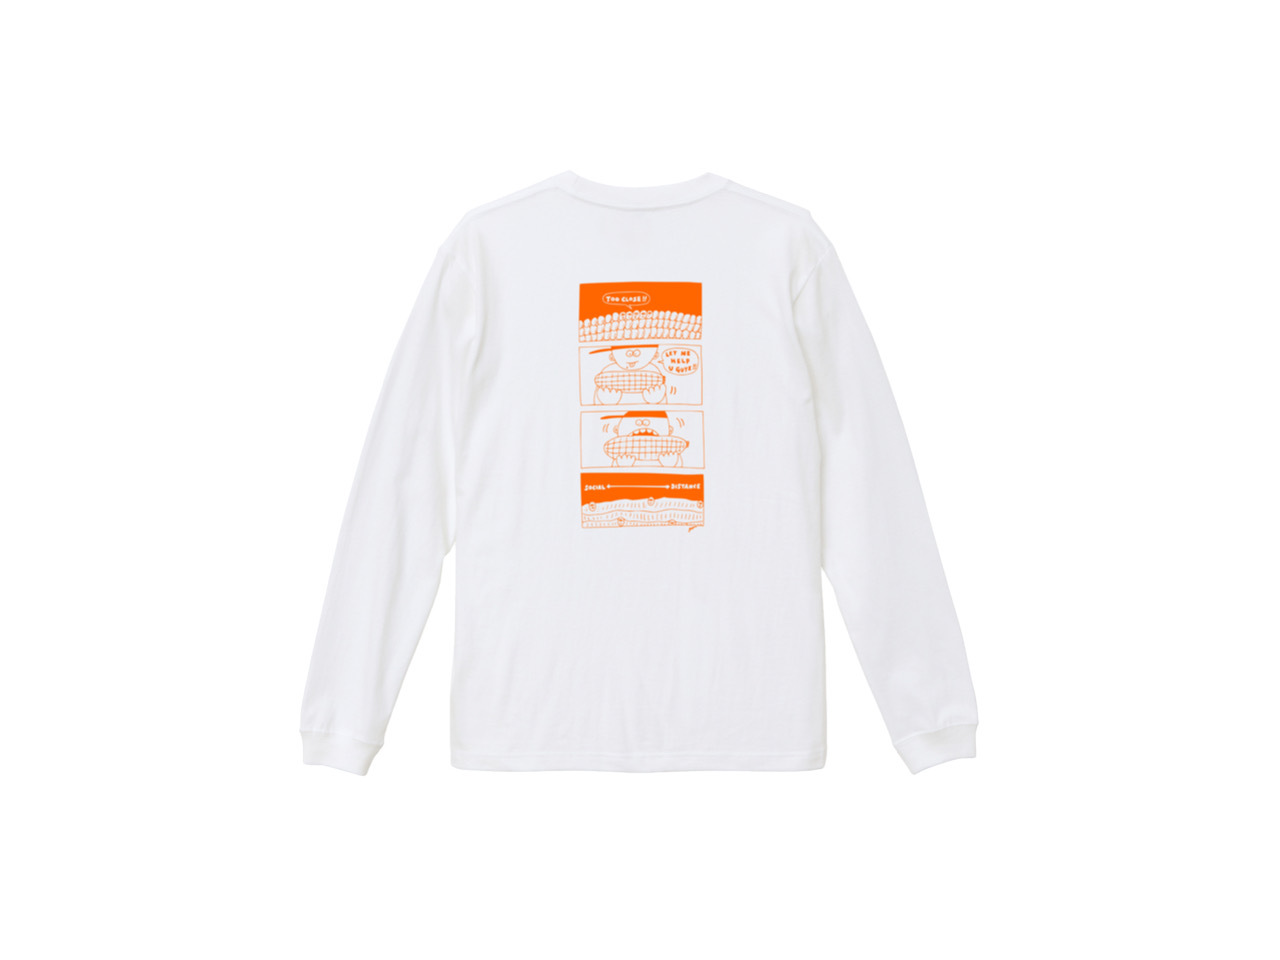 SHI × coguchi Corn SD long T-shirt (WH/OR)